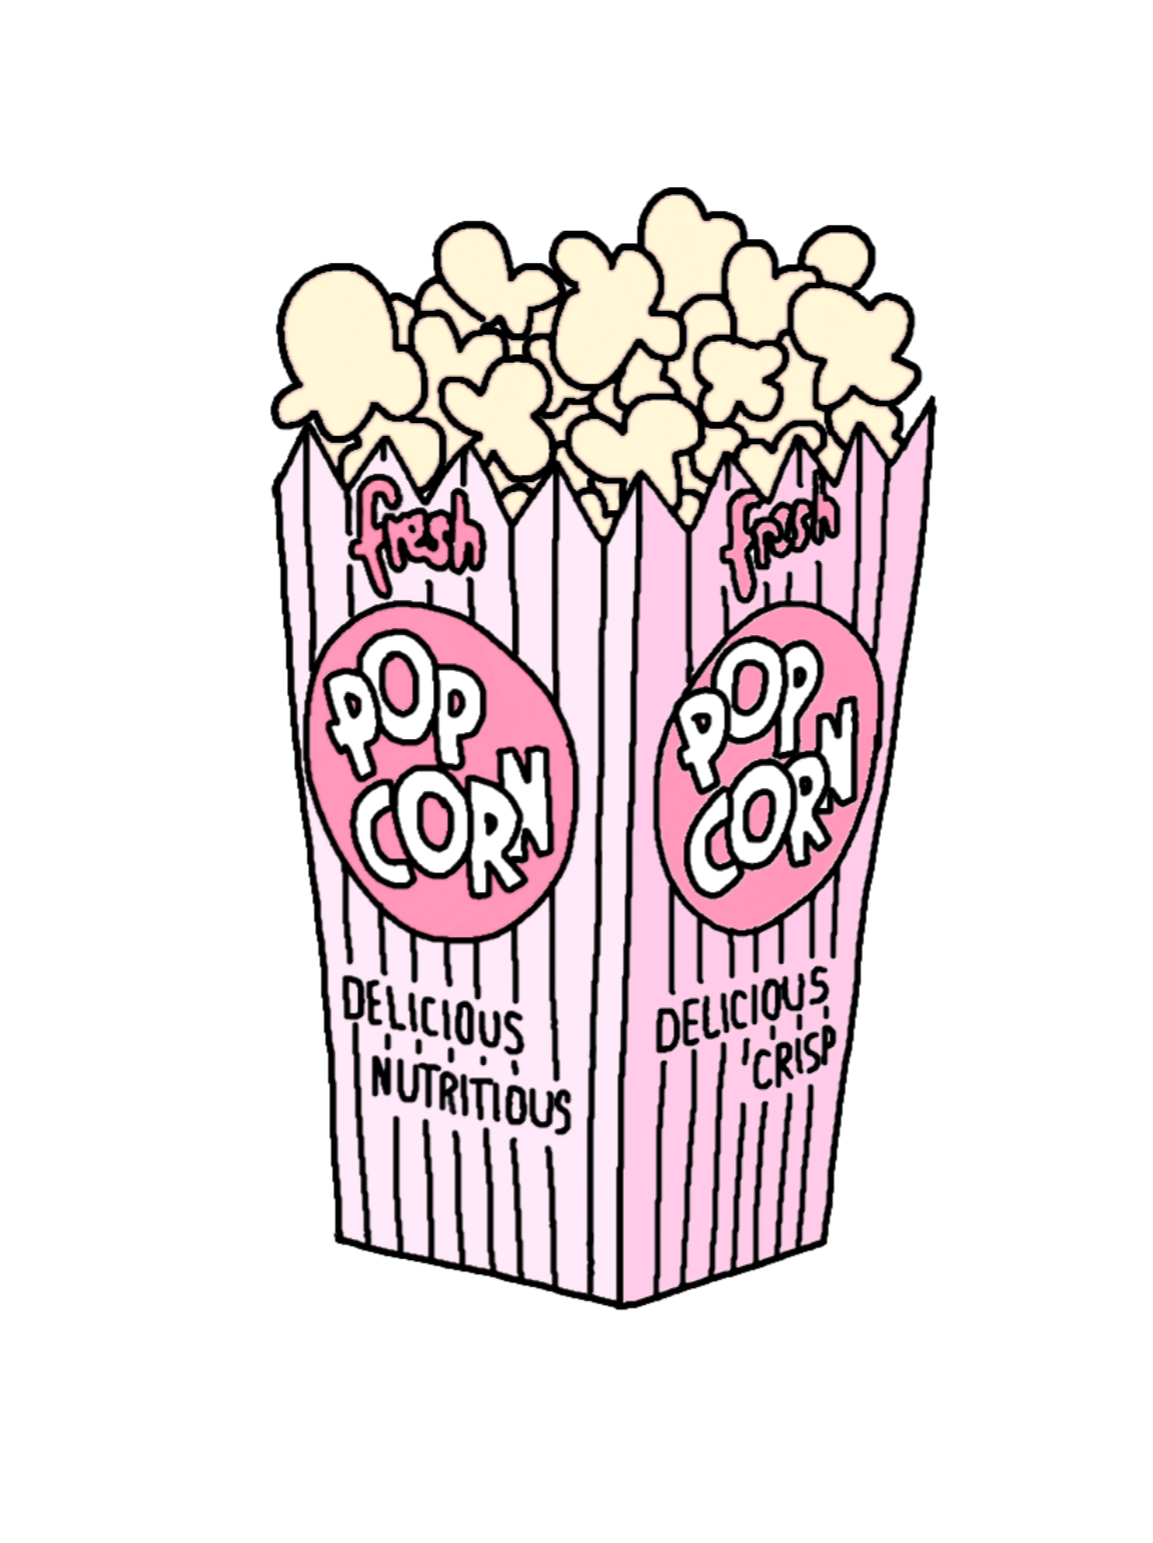 Aesthetic popcorn clipart image black and white library popcorn tumblr funny food pink cinema fresh aesthetic... image black and white library